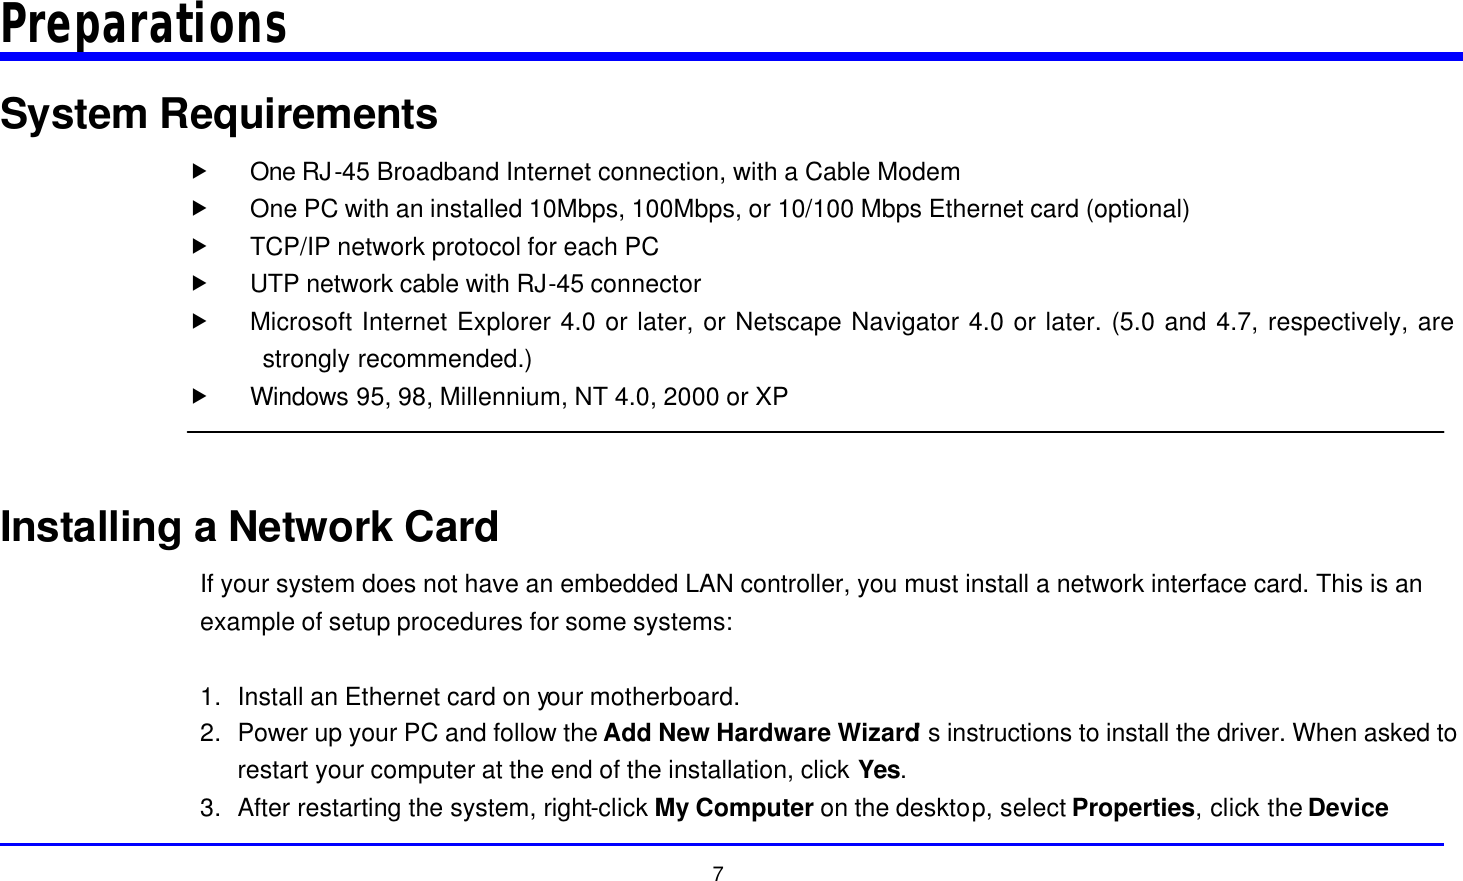 """7 Preparations System Requirements """" One RJ-45 Broadband Internet connection, with a Cable Modem """" One PC with an installed 10Mbps, 100Mbps, or 10/100 Mbps Ethernet card (optional) """" TCP/IP network protocol for each PC """" UTP network cable with RJ-45 connector """" Microsoft Internet Explorer 4.0 or later, or Netscape Navigator 4.0 or later. (5.0 and 4.7, respectively, are strongly recommended.) """" Windows 95, 98, Millennium, NT 4.0, 2000 or XP   Installing a Network Card If your system does not have an embedded LAN controller, you must install a network interface card. This is an example of setup procedures for some systems:  1. Install an Ethernet card on your motherboard. 2. Power up your PC and follow the Add New Hardware Wizard's instructions to install the driver. When asked to restart your computer at the end of the installation, click Yes. 3. After restarting the system, right-click My Computer on the desktop, select Properties, click the Device"""